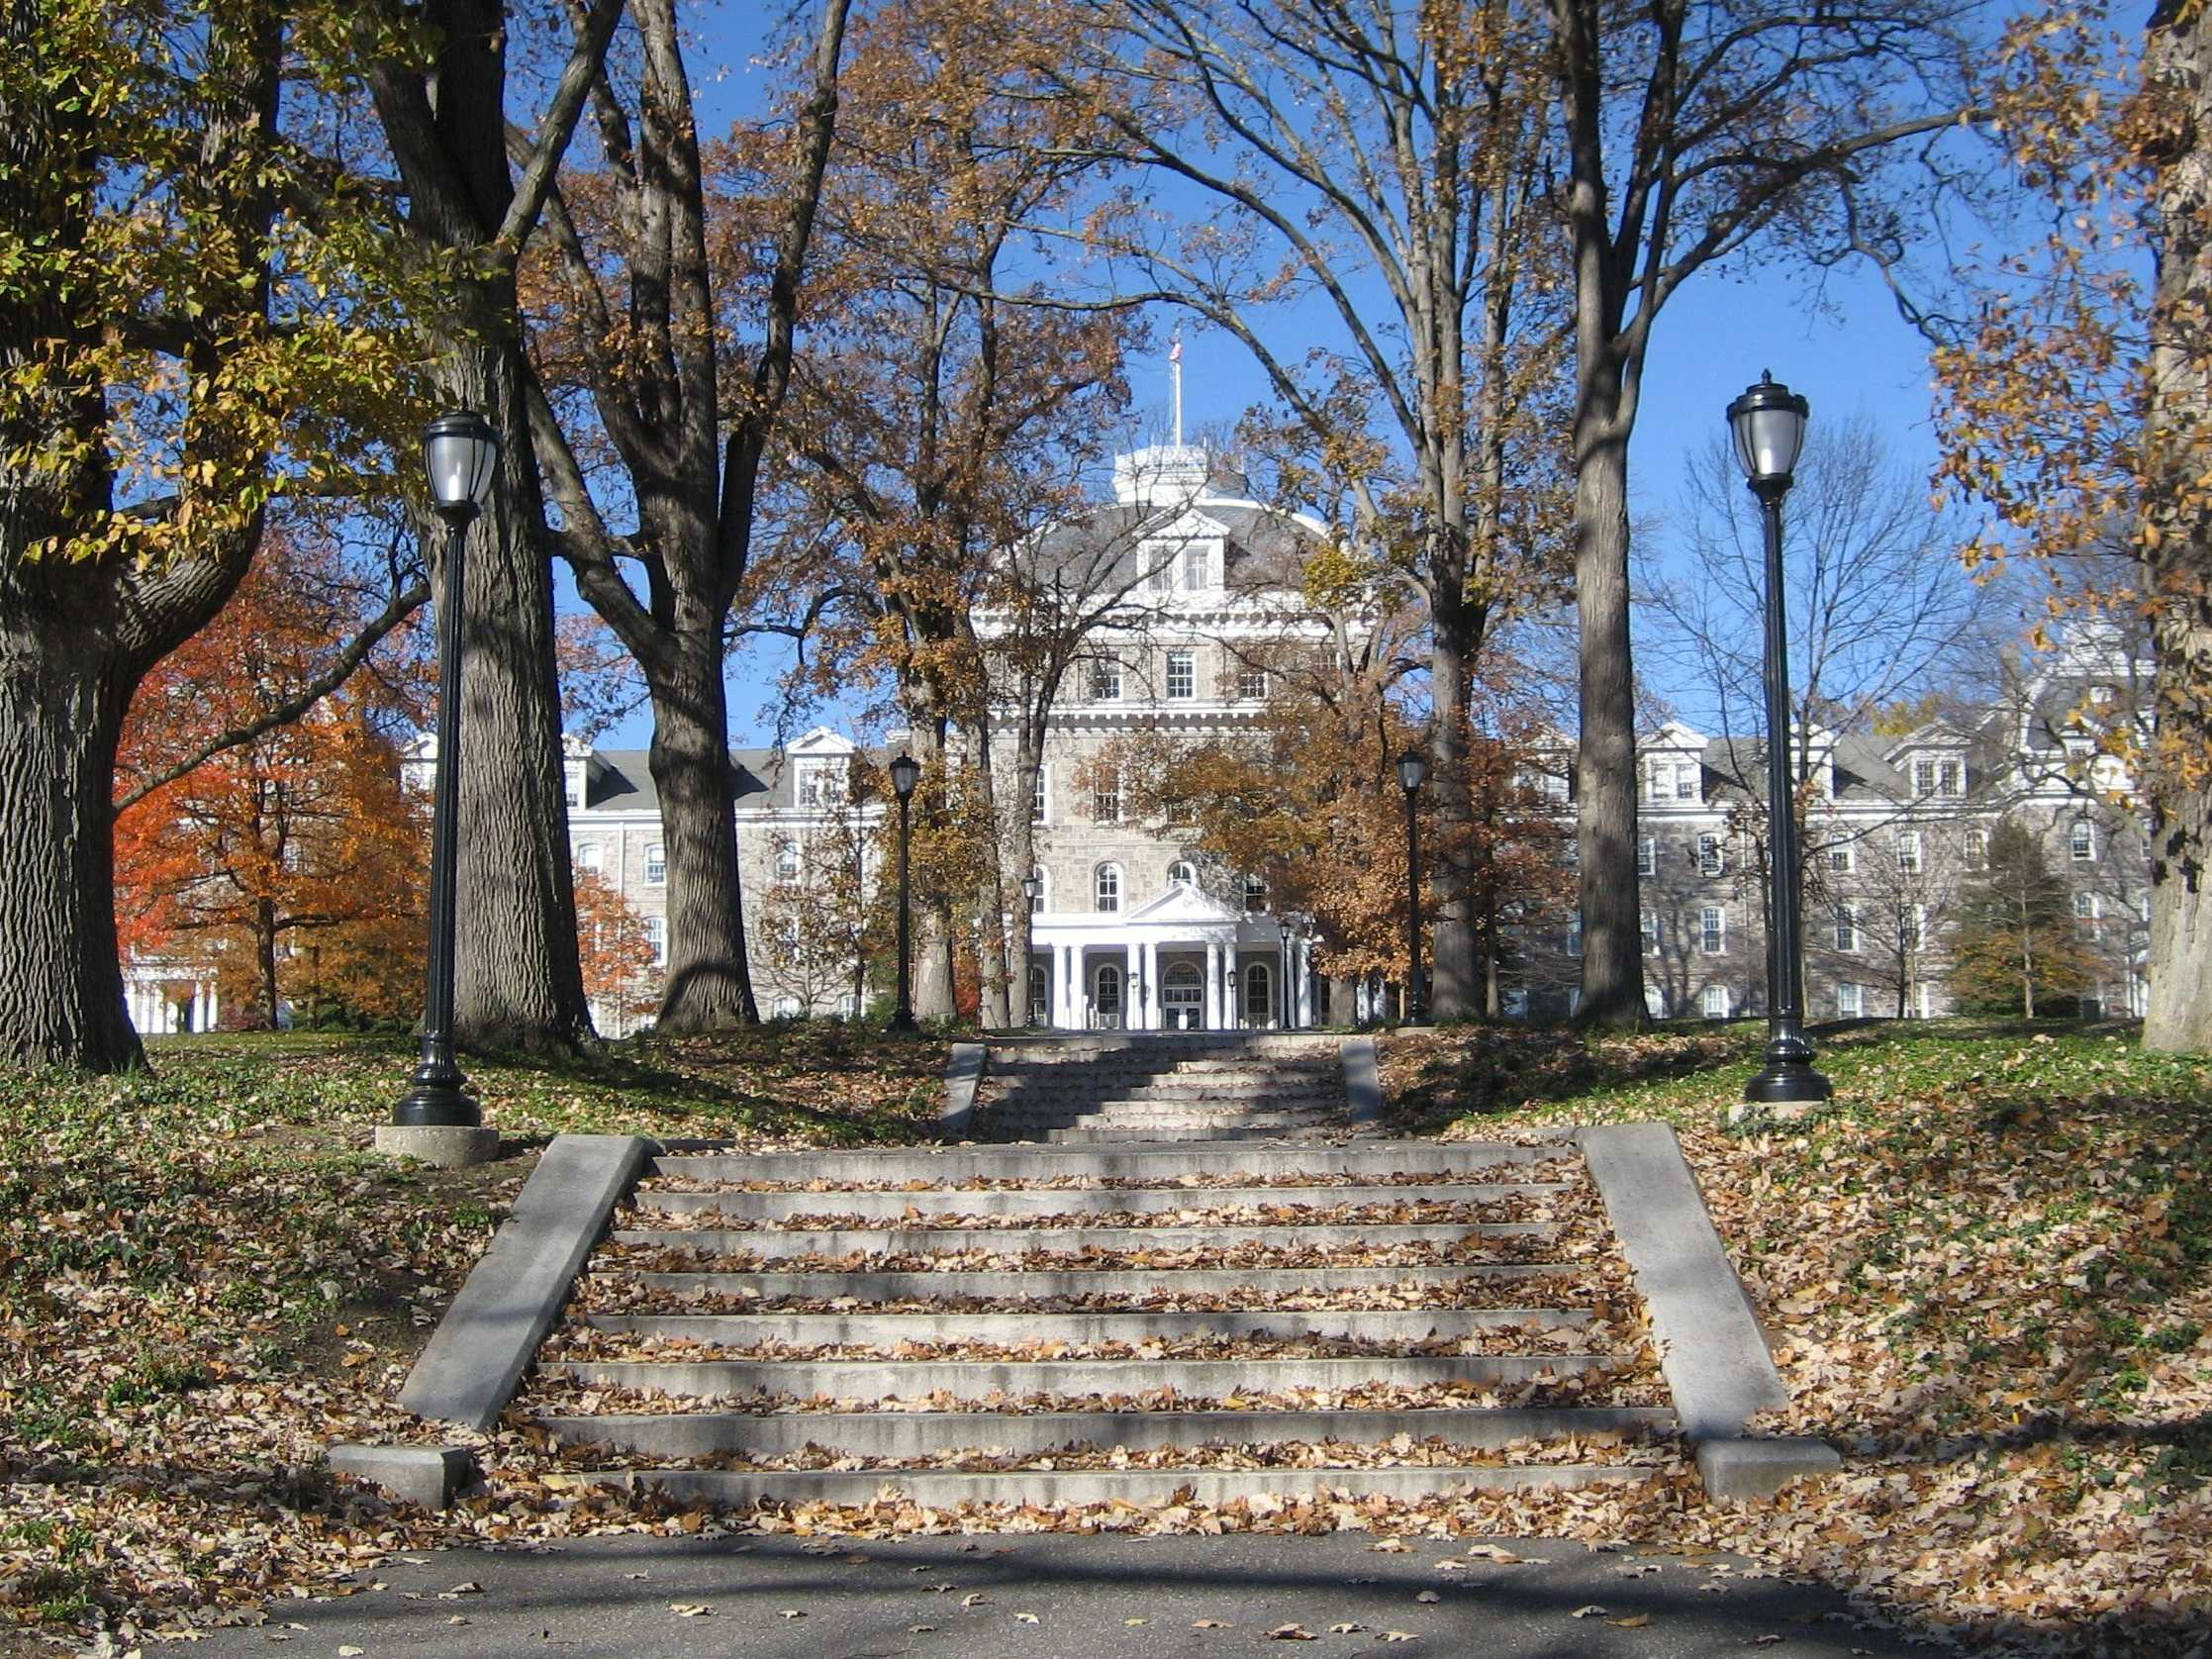 47. Swarthmore College